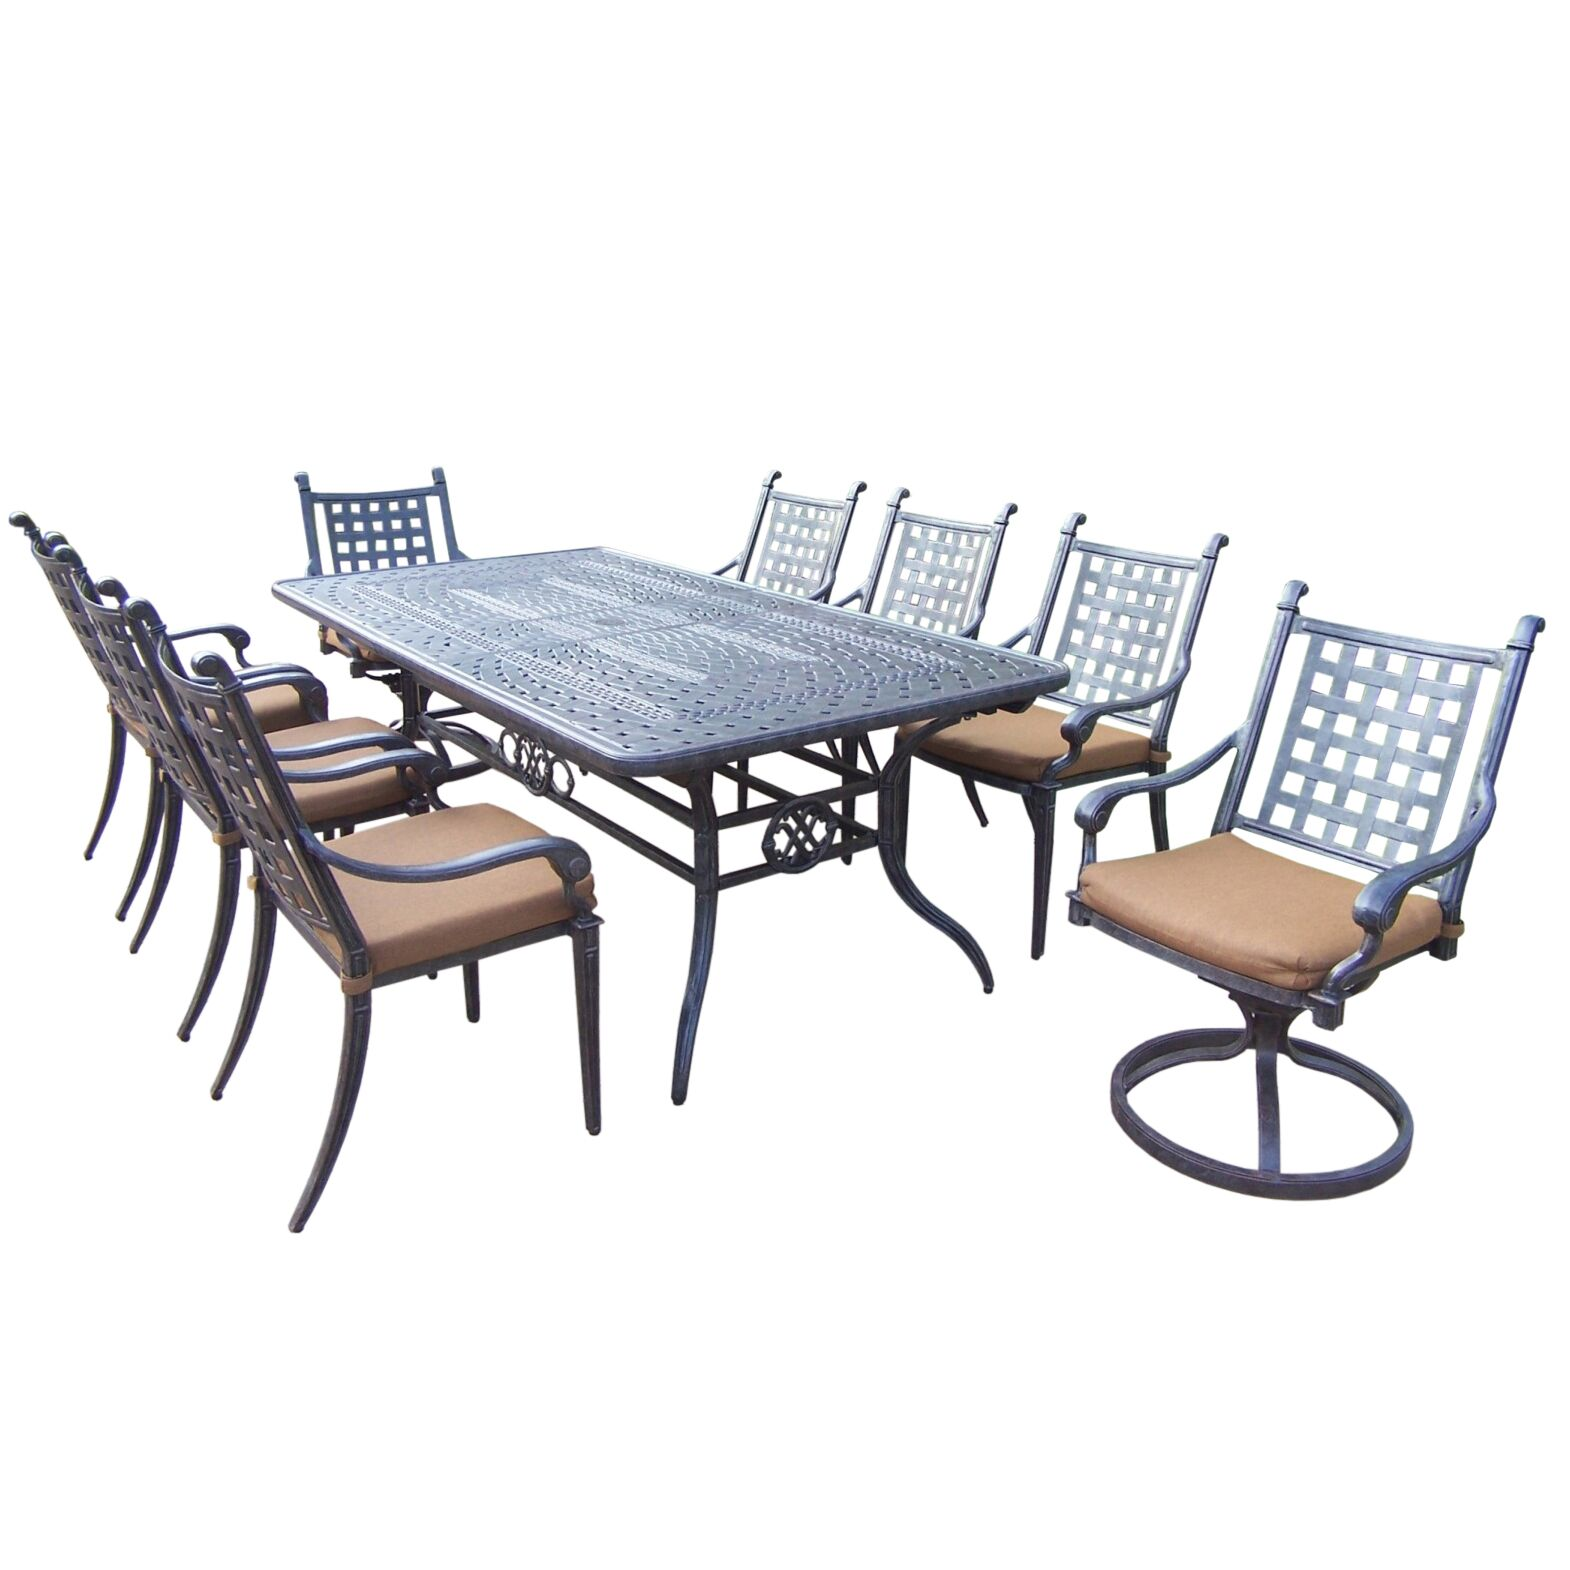 Arness 14 Piece Bar Height Dining Set Table Size: 41